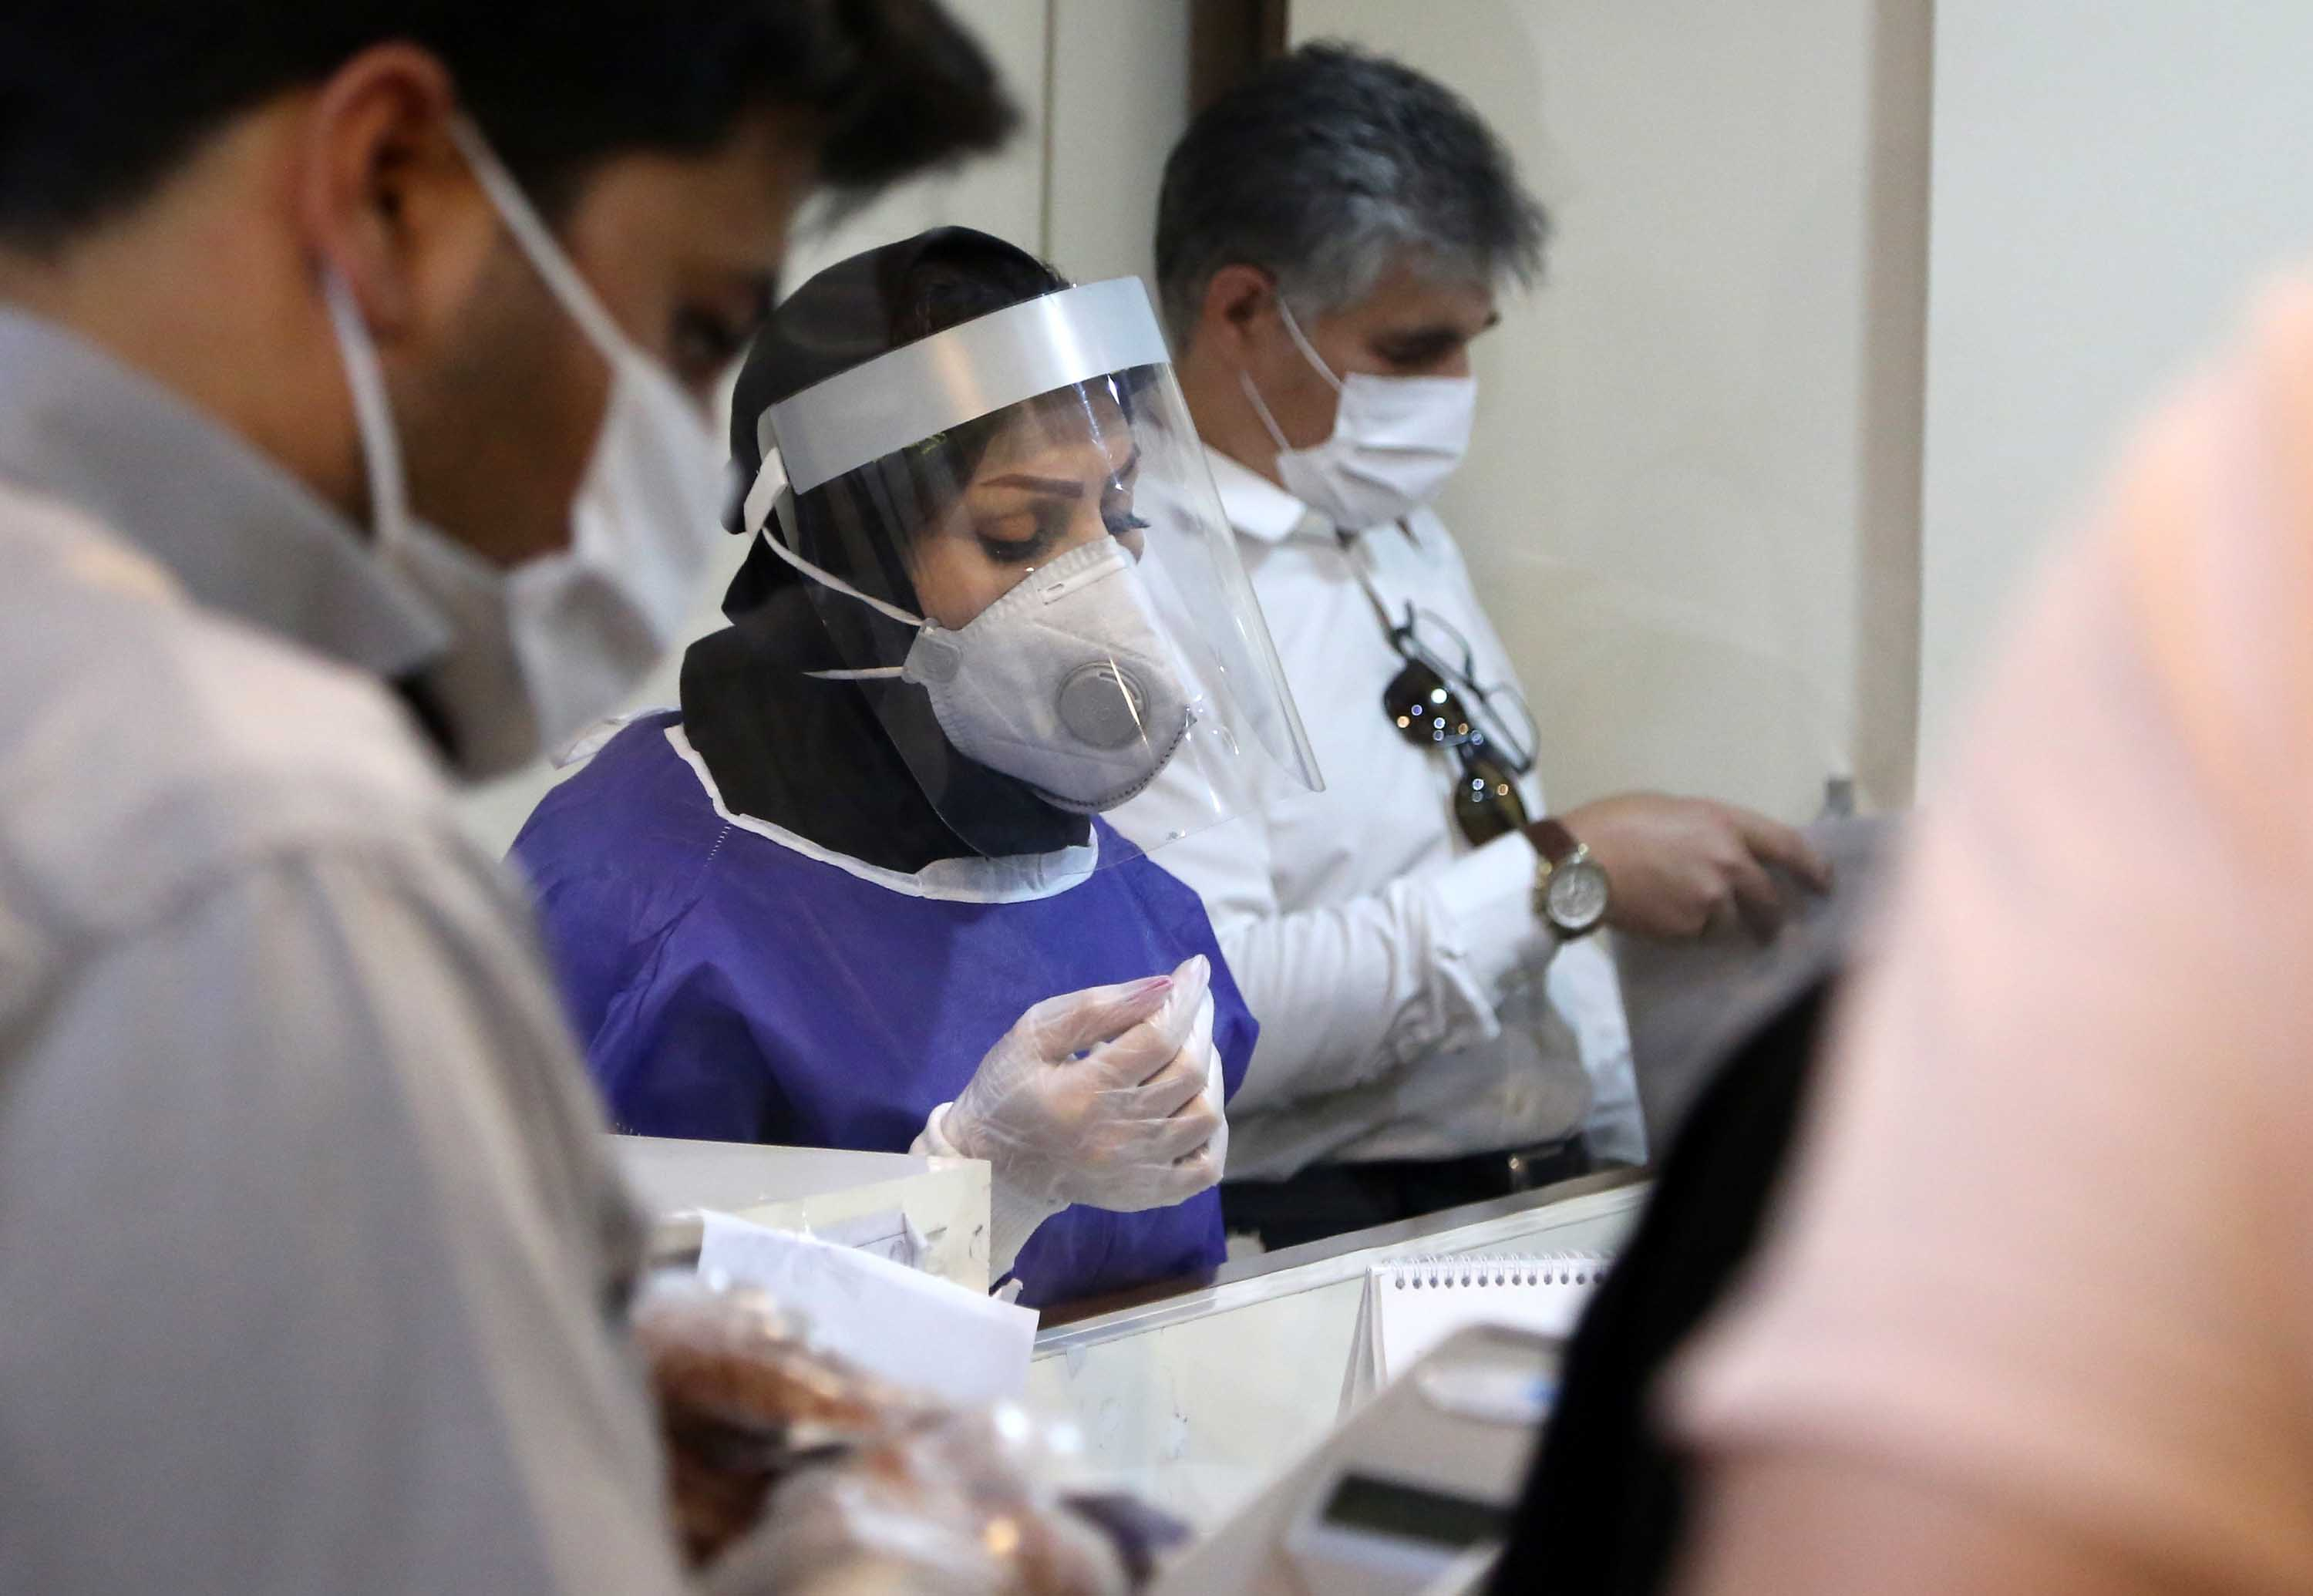 Medical professionals work at a coronavirus testing laboratory in Tehran, Iran, on July 14.